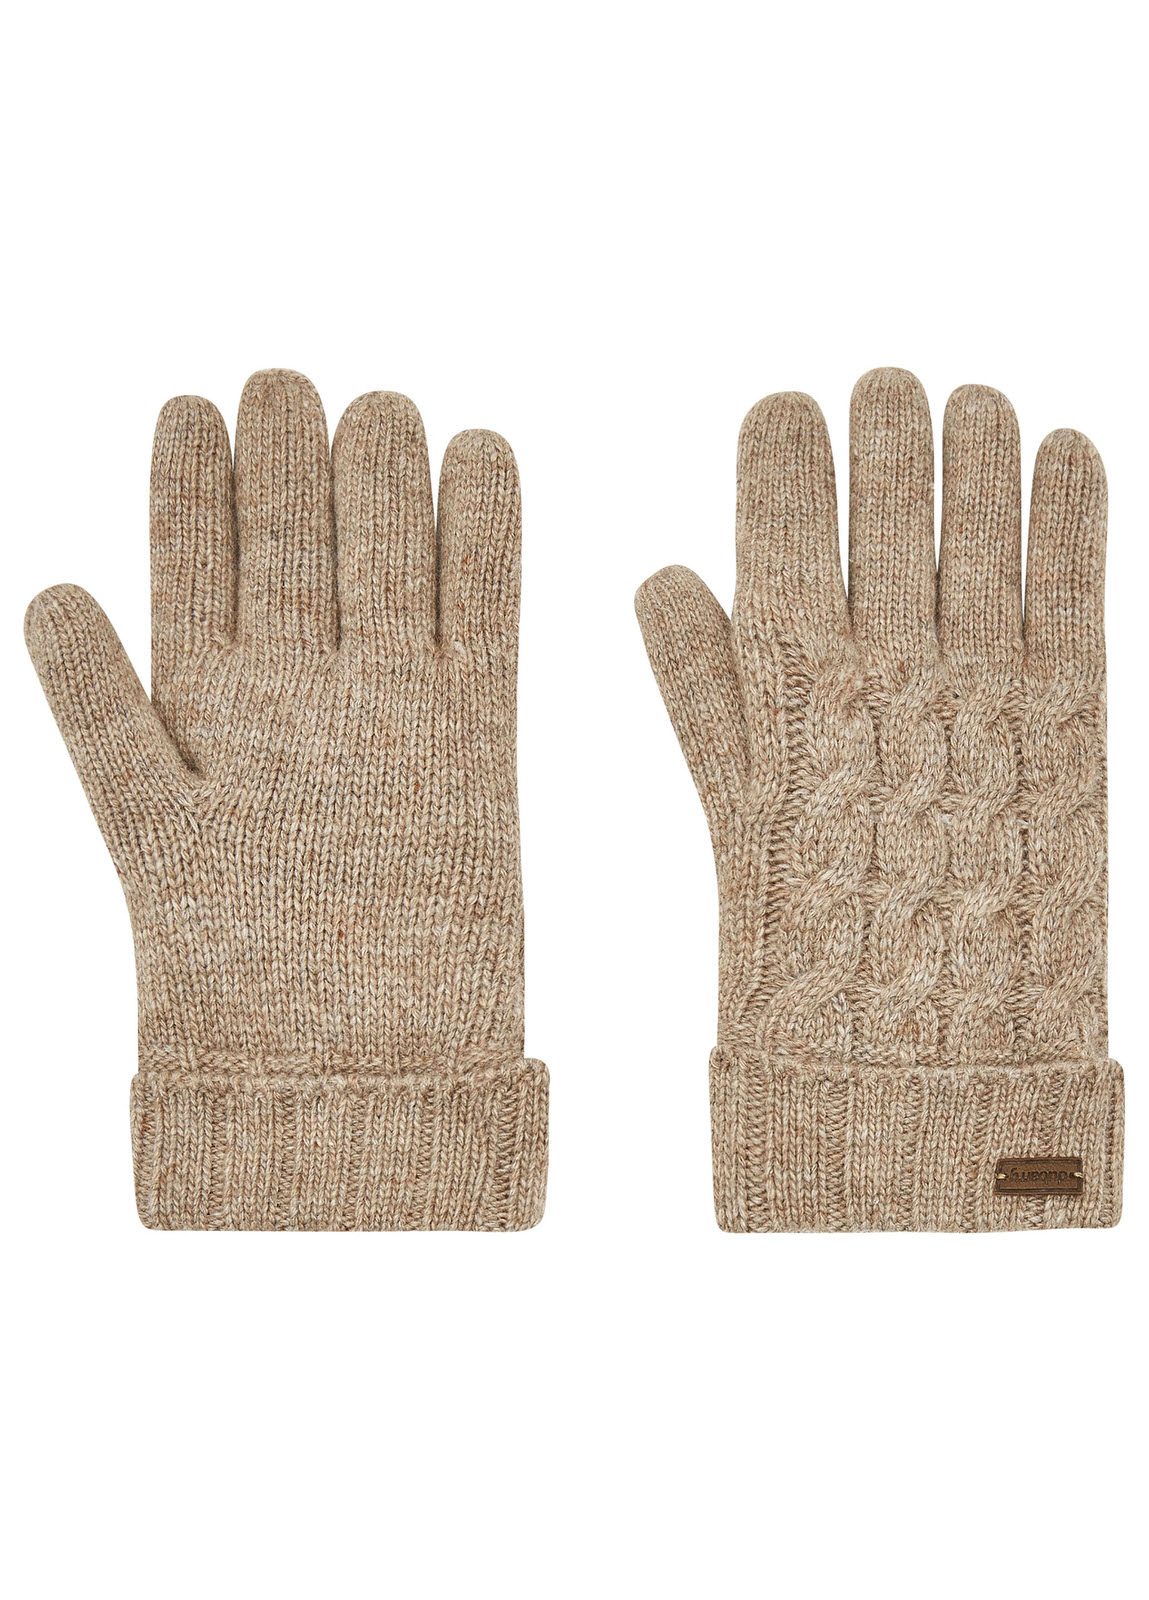 Buckley_Knitted_Gloves_Stone_Image_1